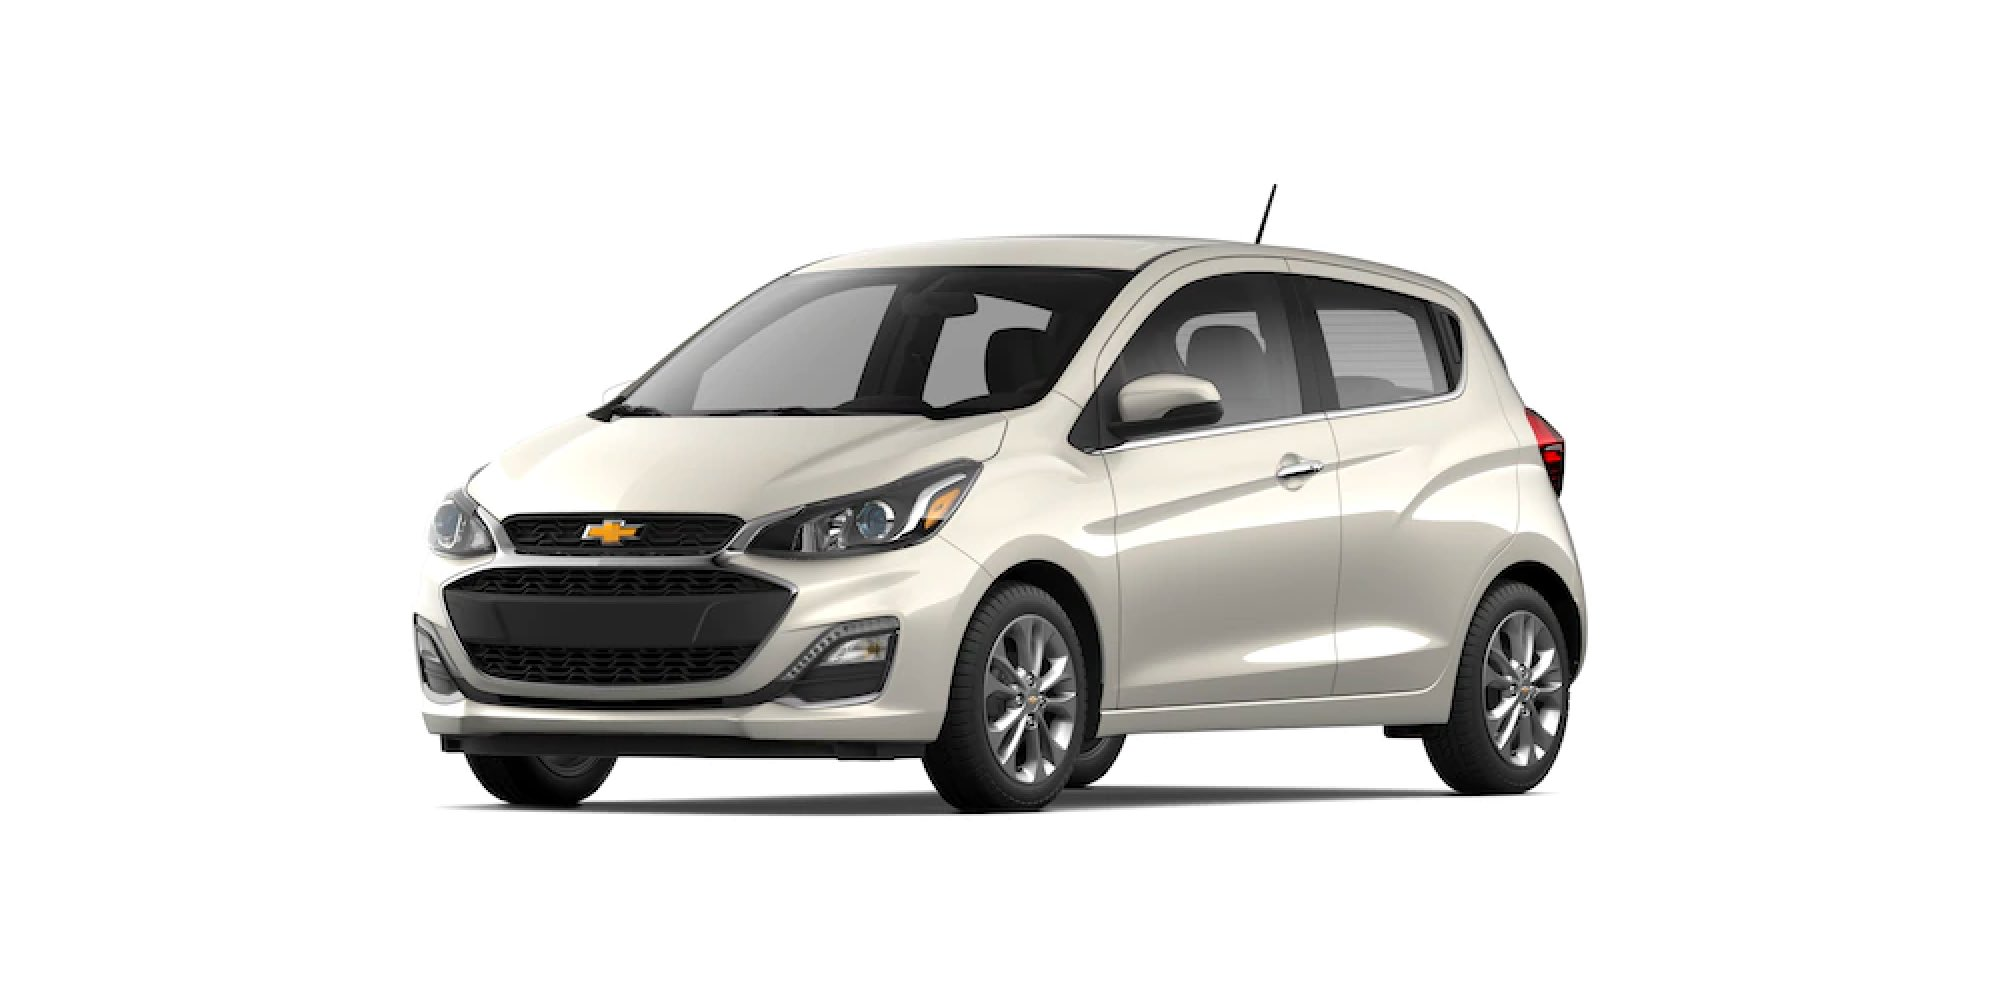 2021 Chevrolet Spark in Toasted Marshmallow